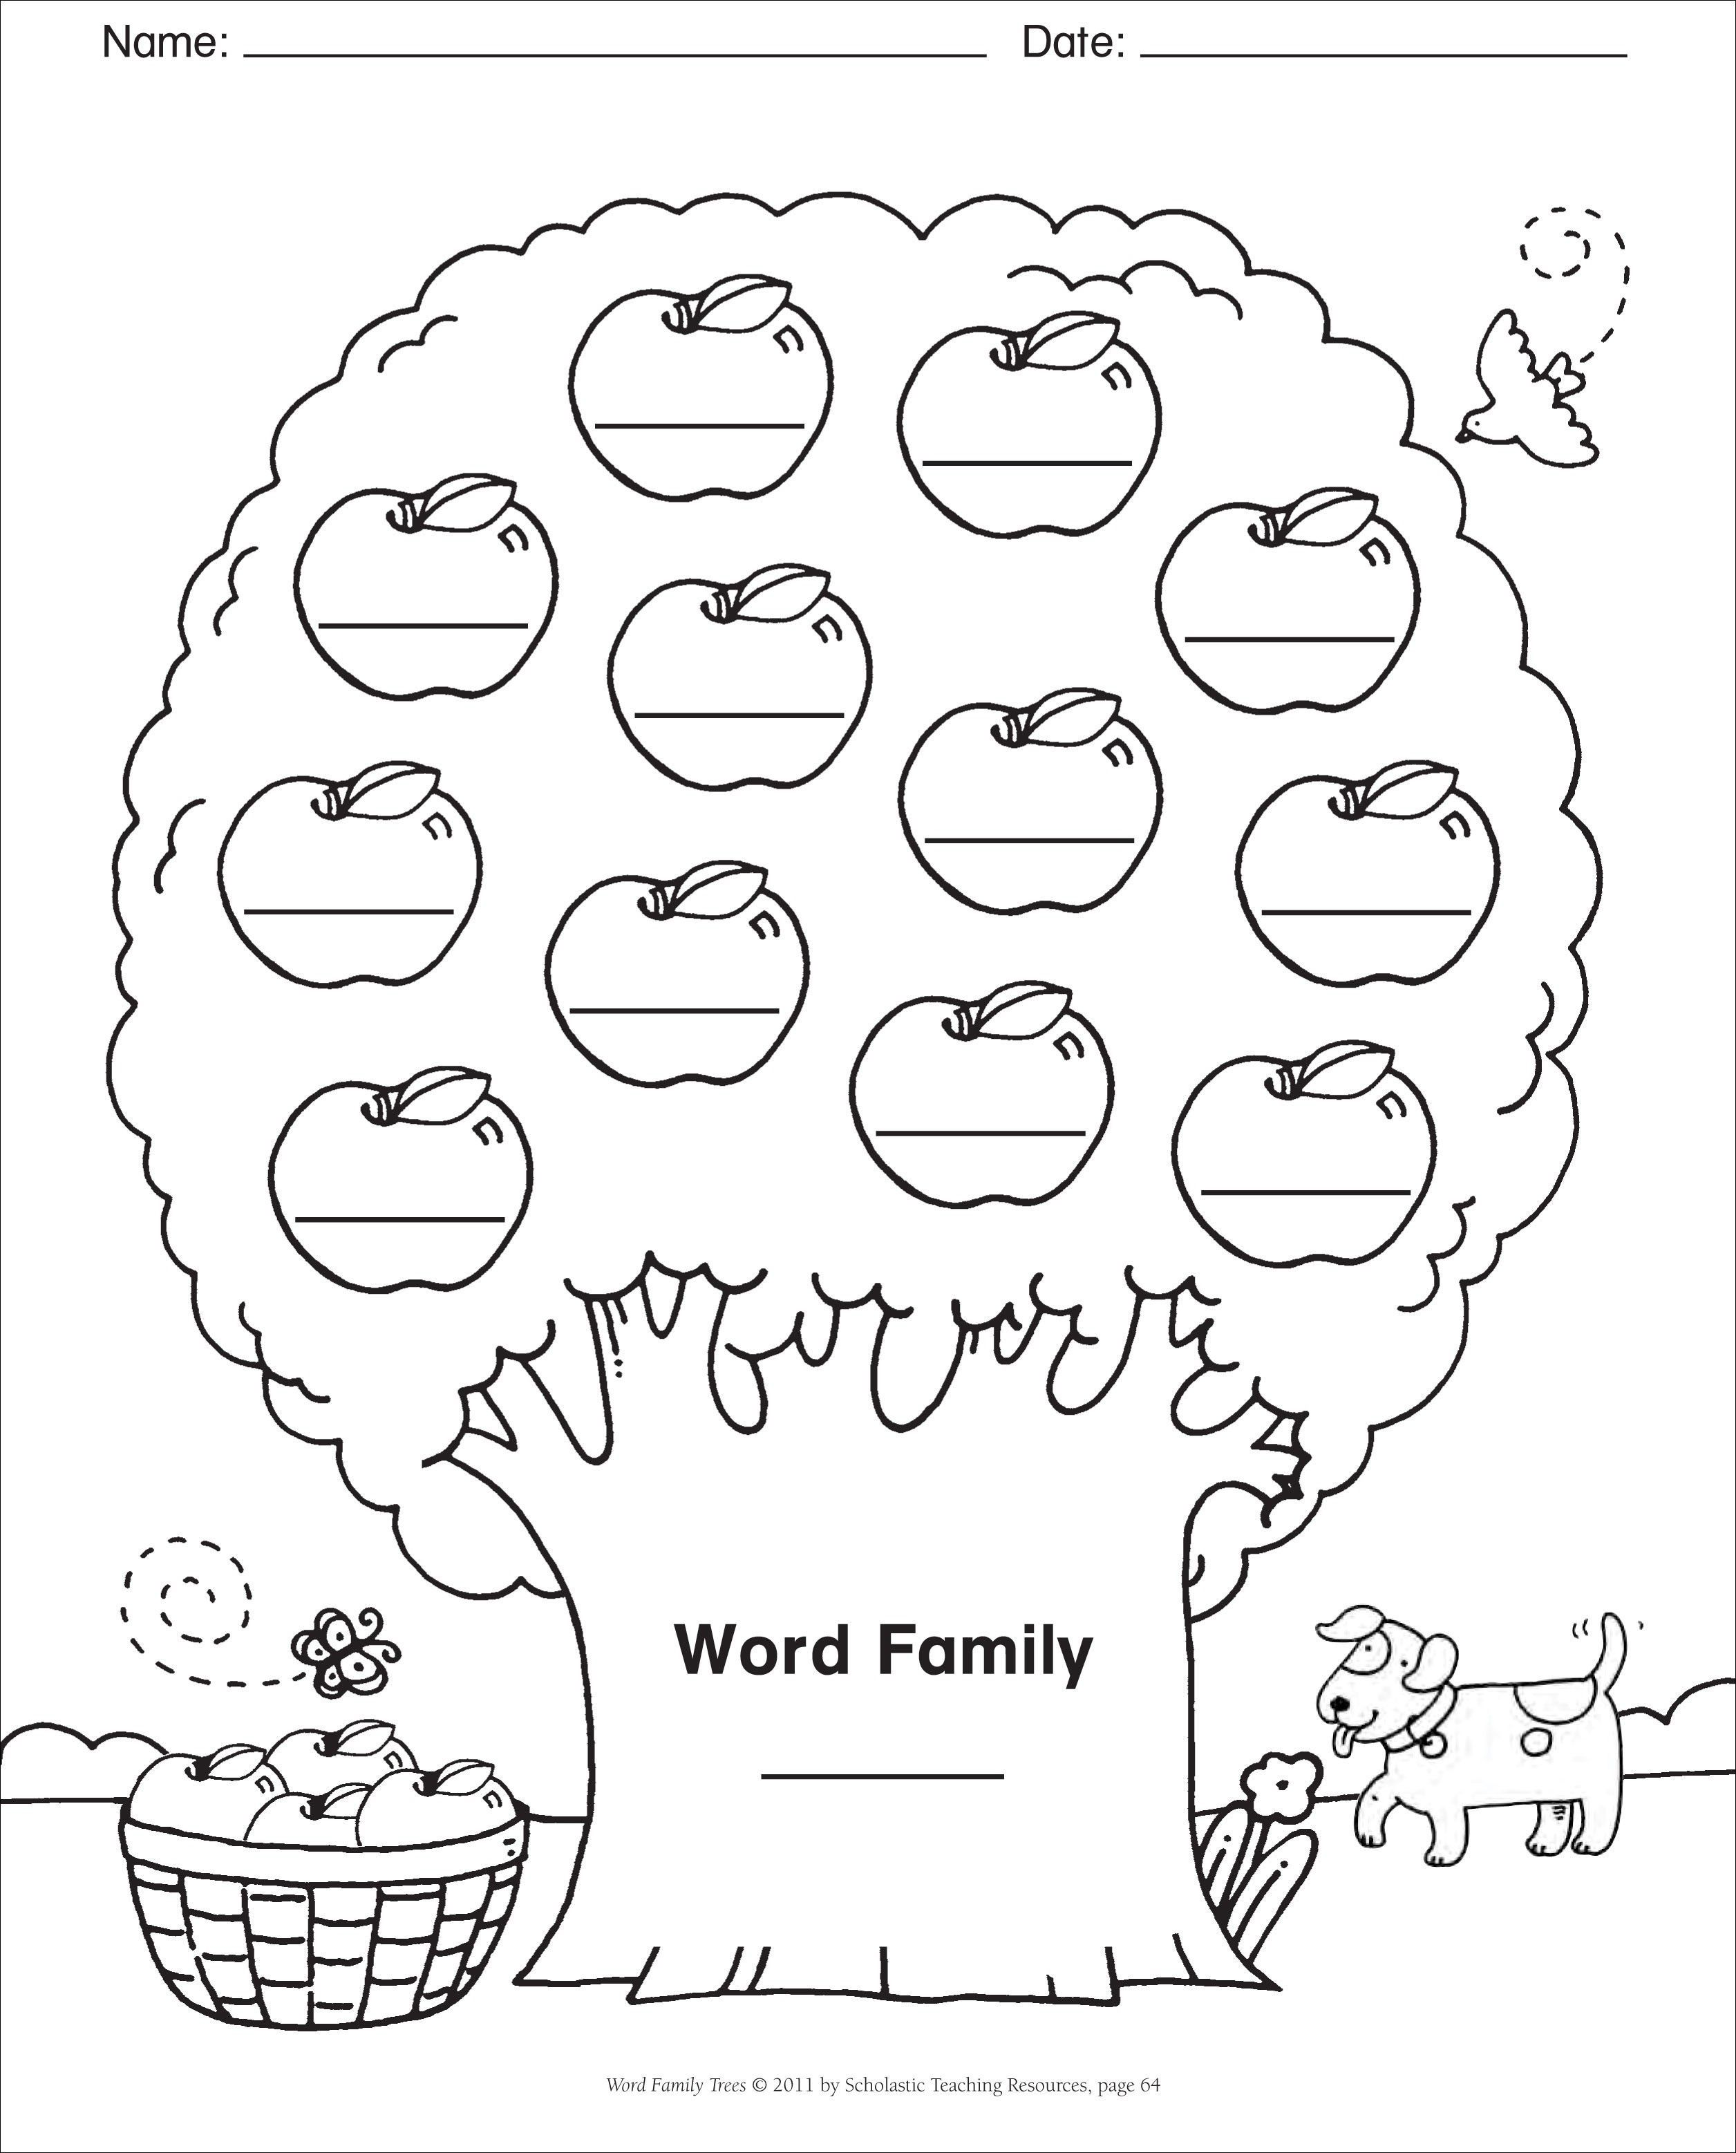 006 Stupendou Family Tree Book Template Word Highest Quality  HistoryFull